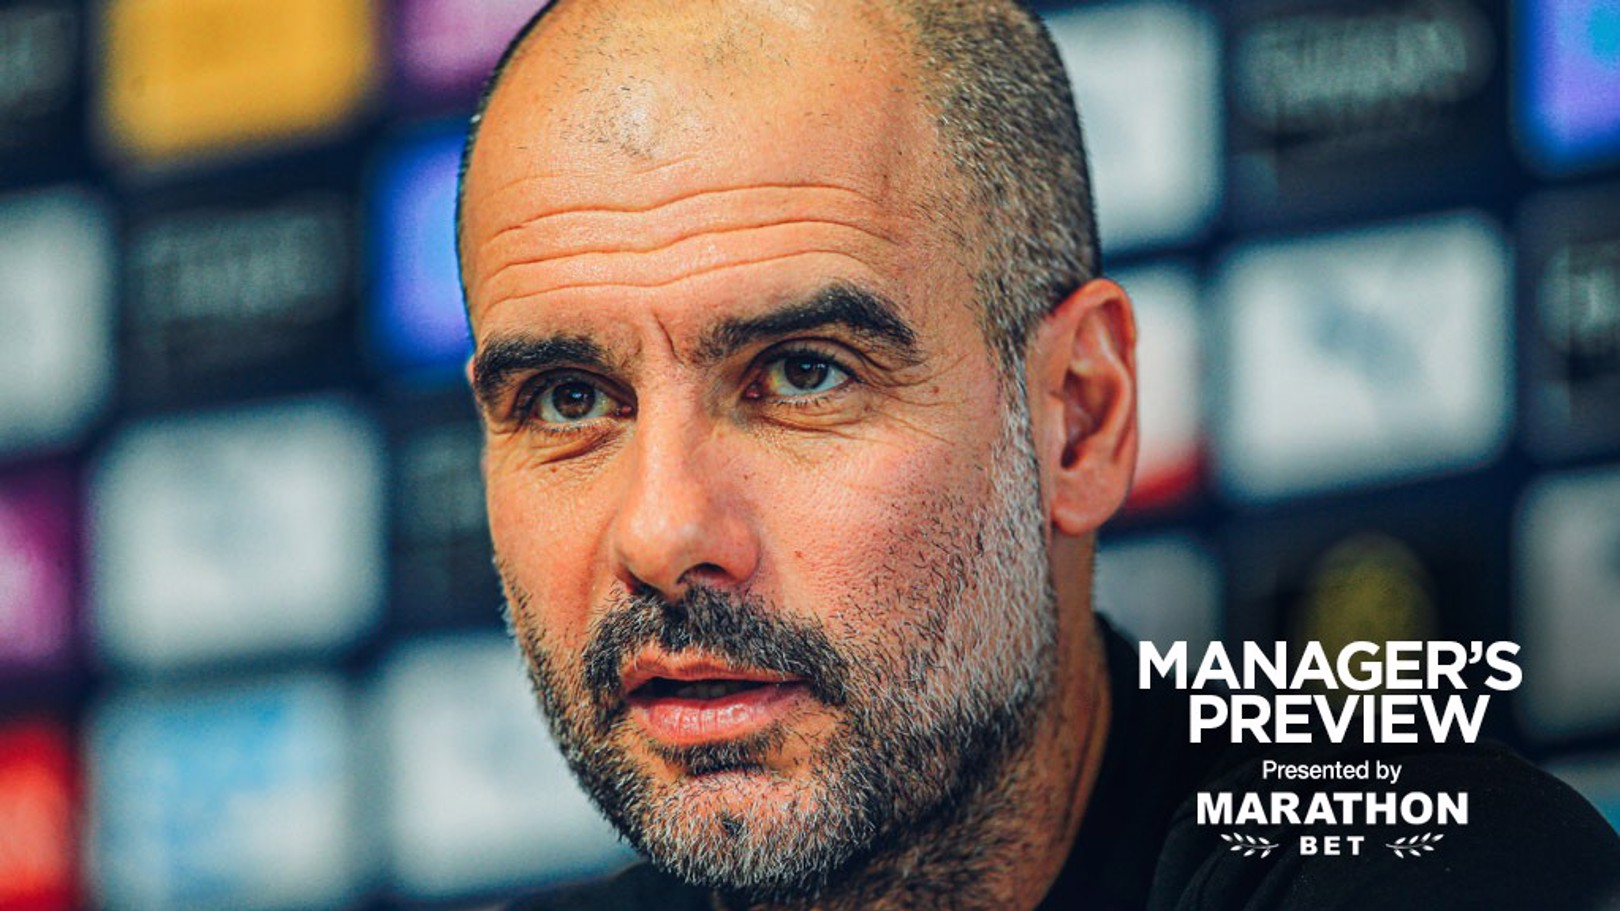 PREVIEW: Pep Guardiola provides an update as City prepare to host Everton.